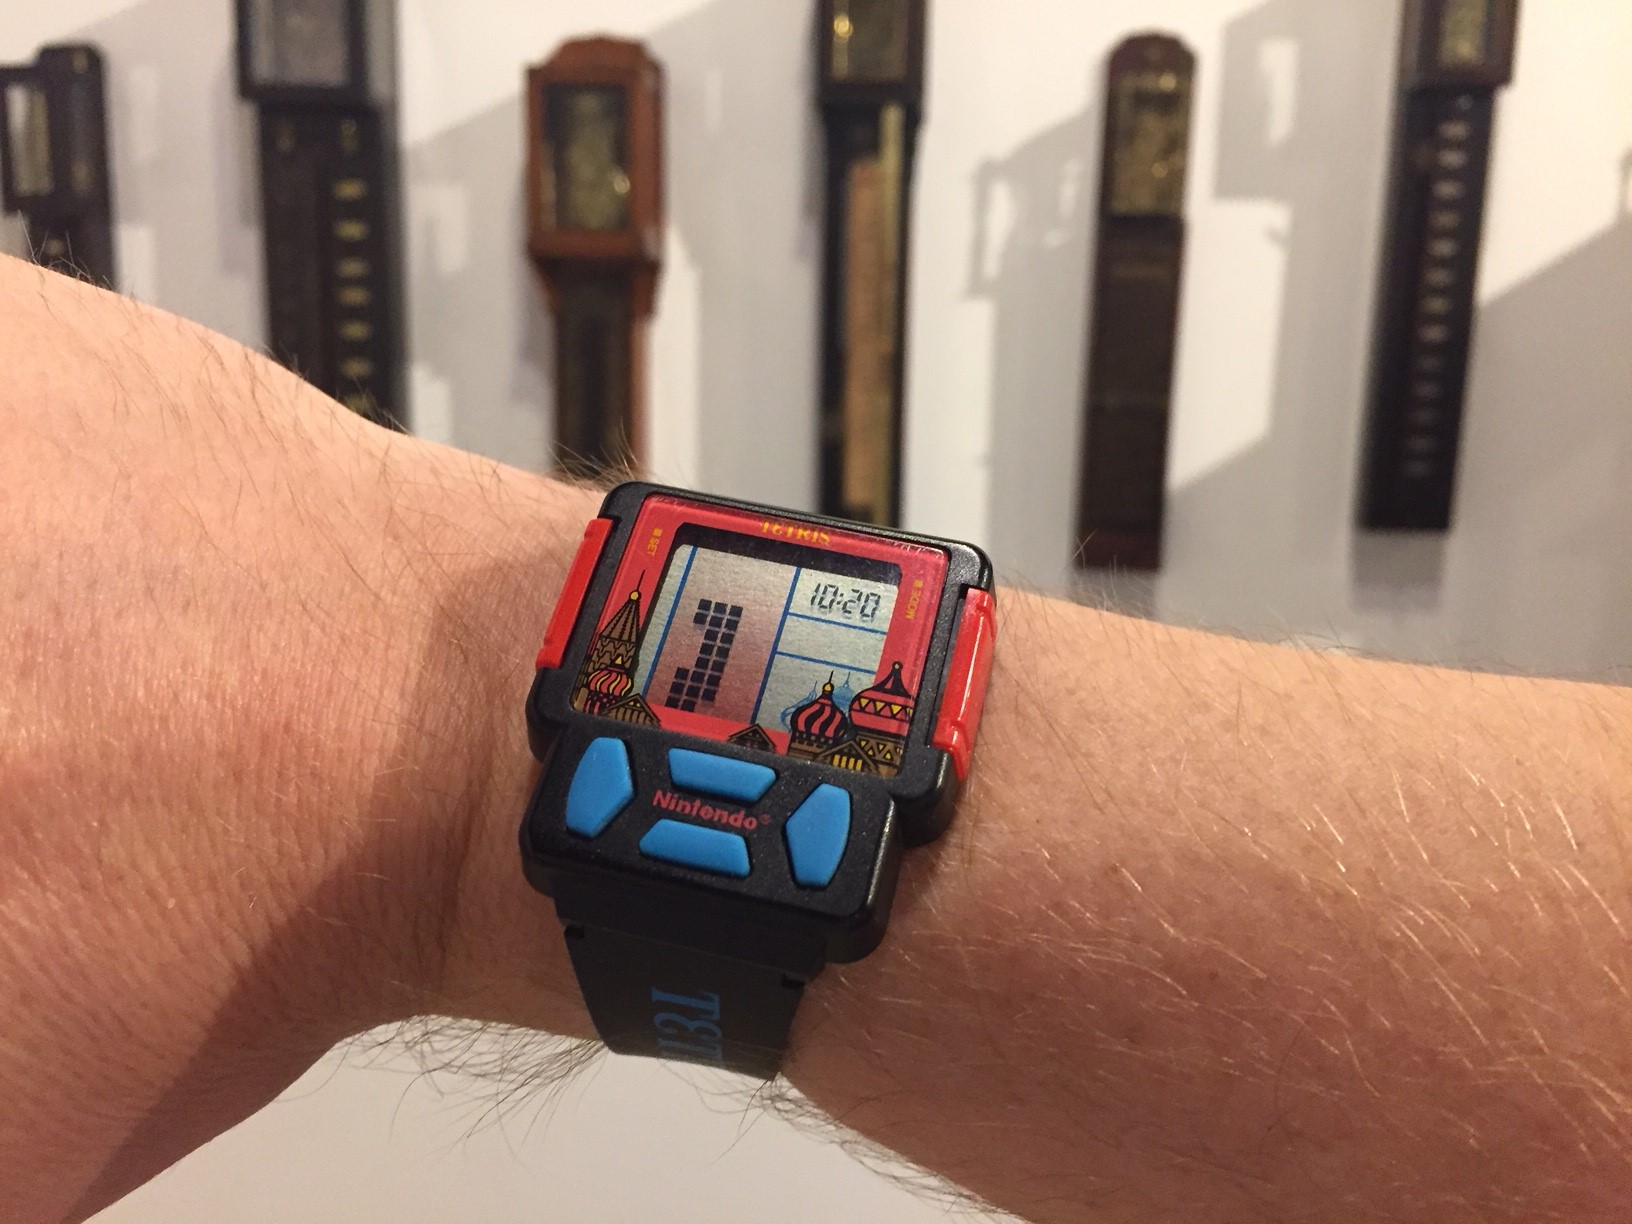 Tetris watch on man's wrist with Japanese shaku-dokei clock display in background at the National Watch & Clock Museum